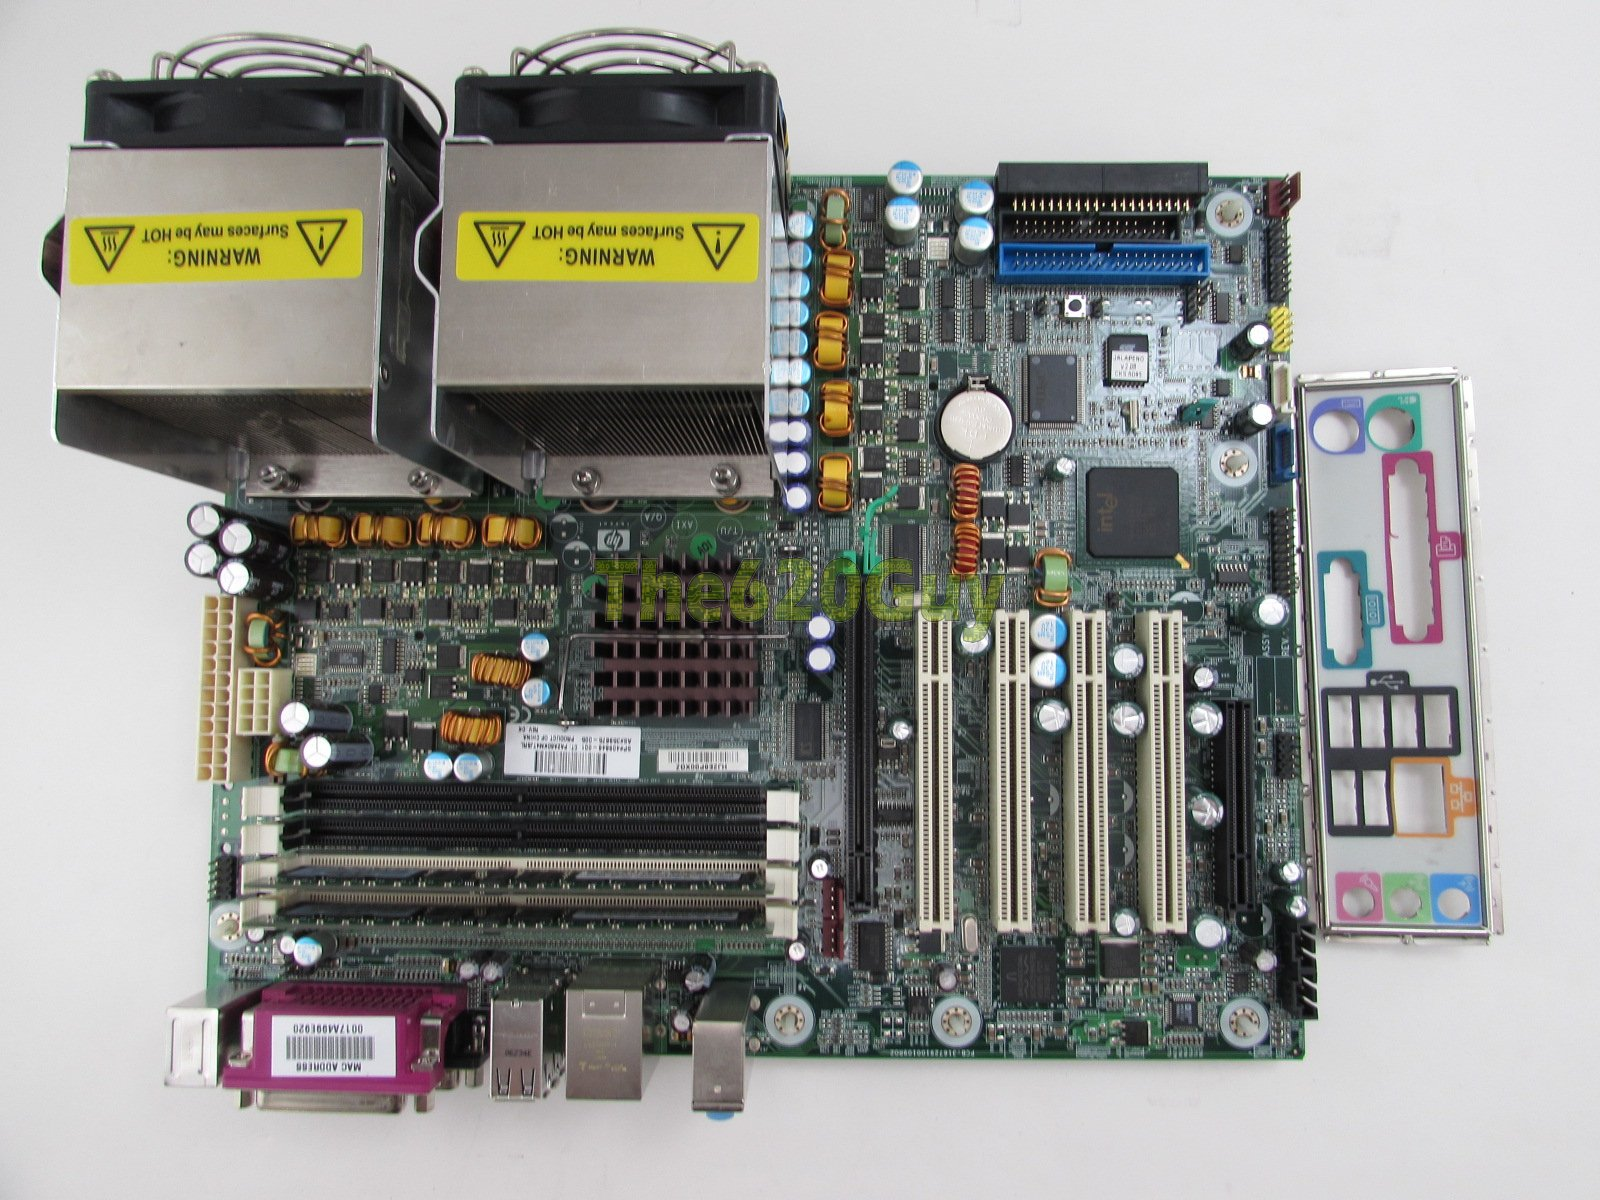 Hp Xw6200 Manual Auto Electrical Wiring Diagram For A Utilitech 553456 Bathroom Fan Workstation Motherboard 409646